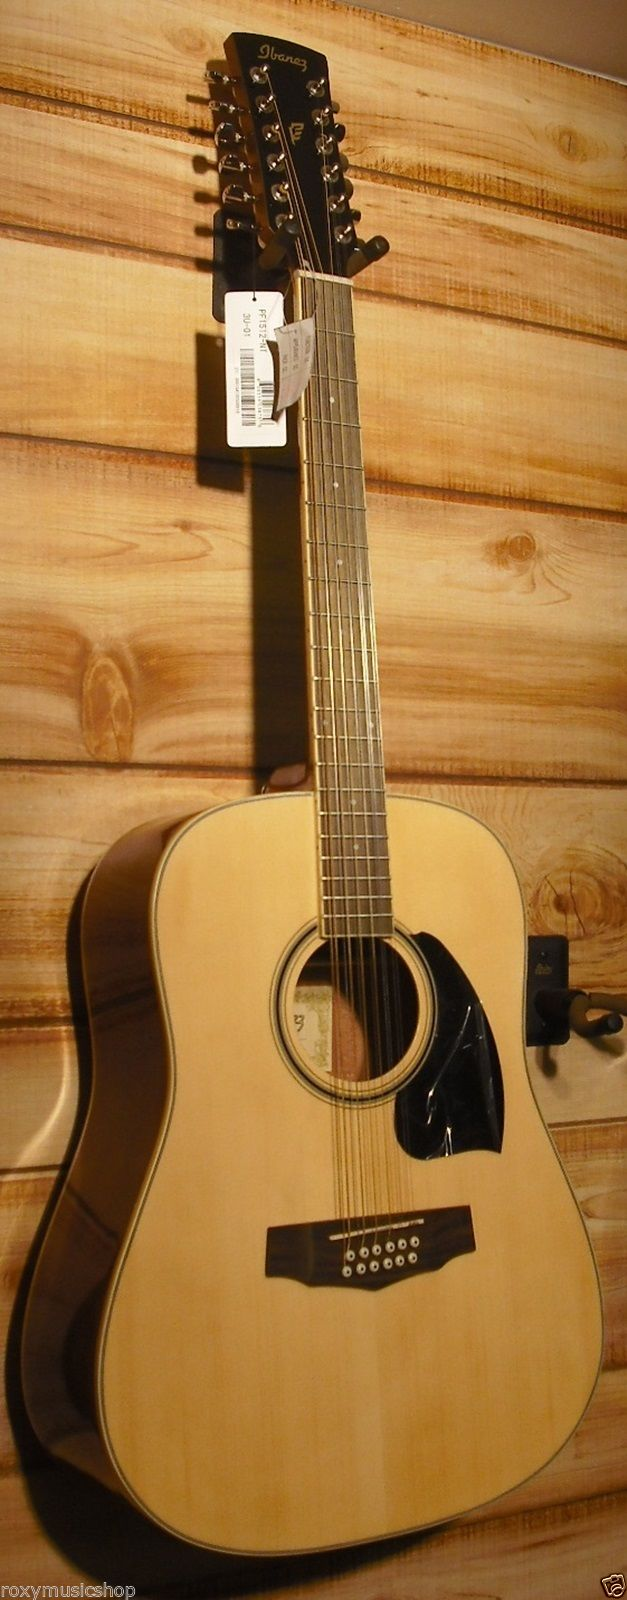 ibanez pf1512 12 string dreadnought acoustic guitar natural high gloss. Black Bedroom Furniture Sets. Home Design Ideas